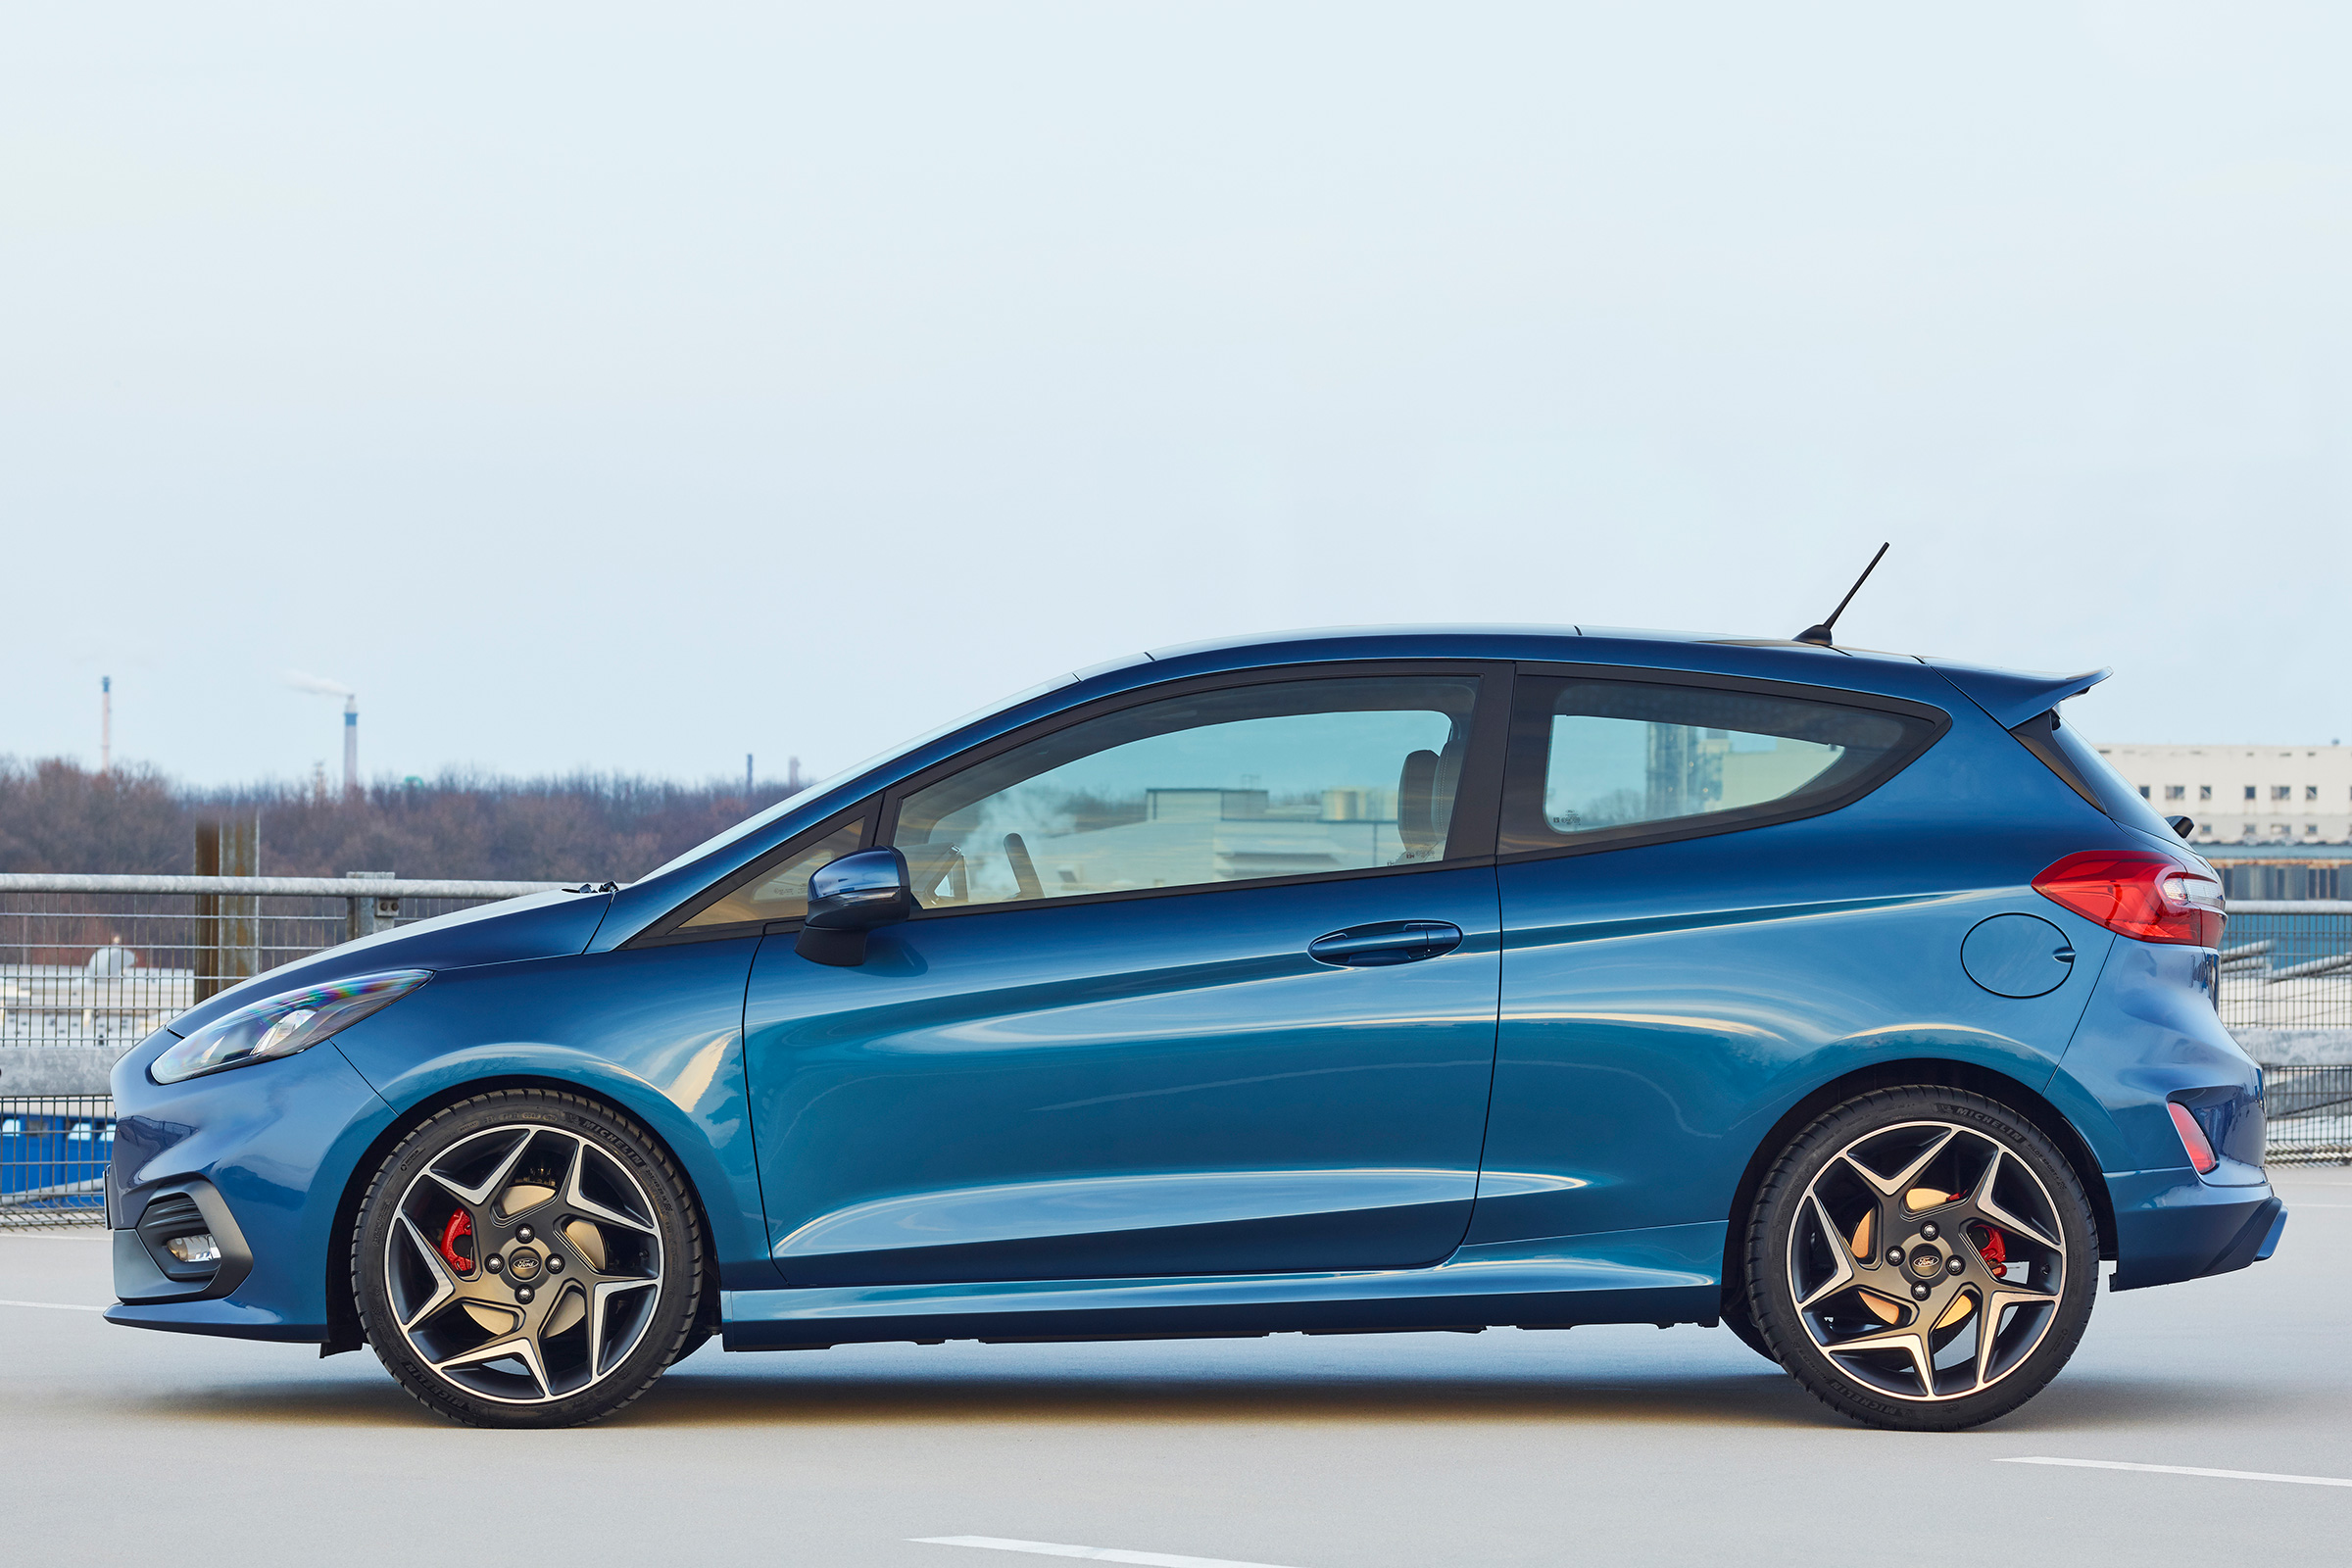 2018 Ford Fiesta ST Exterior Side (Photo 6 of 14)